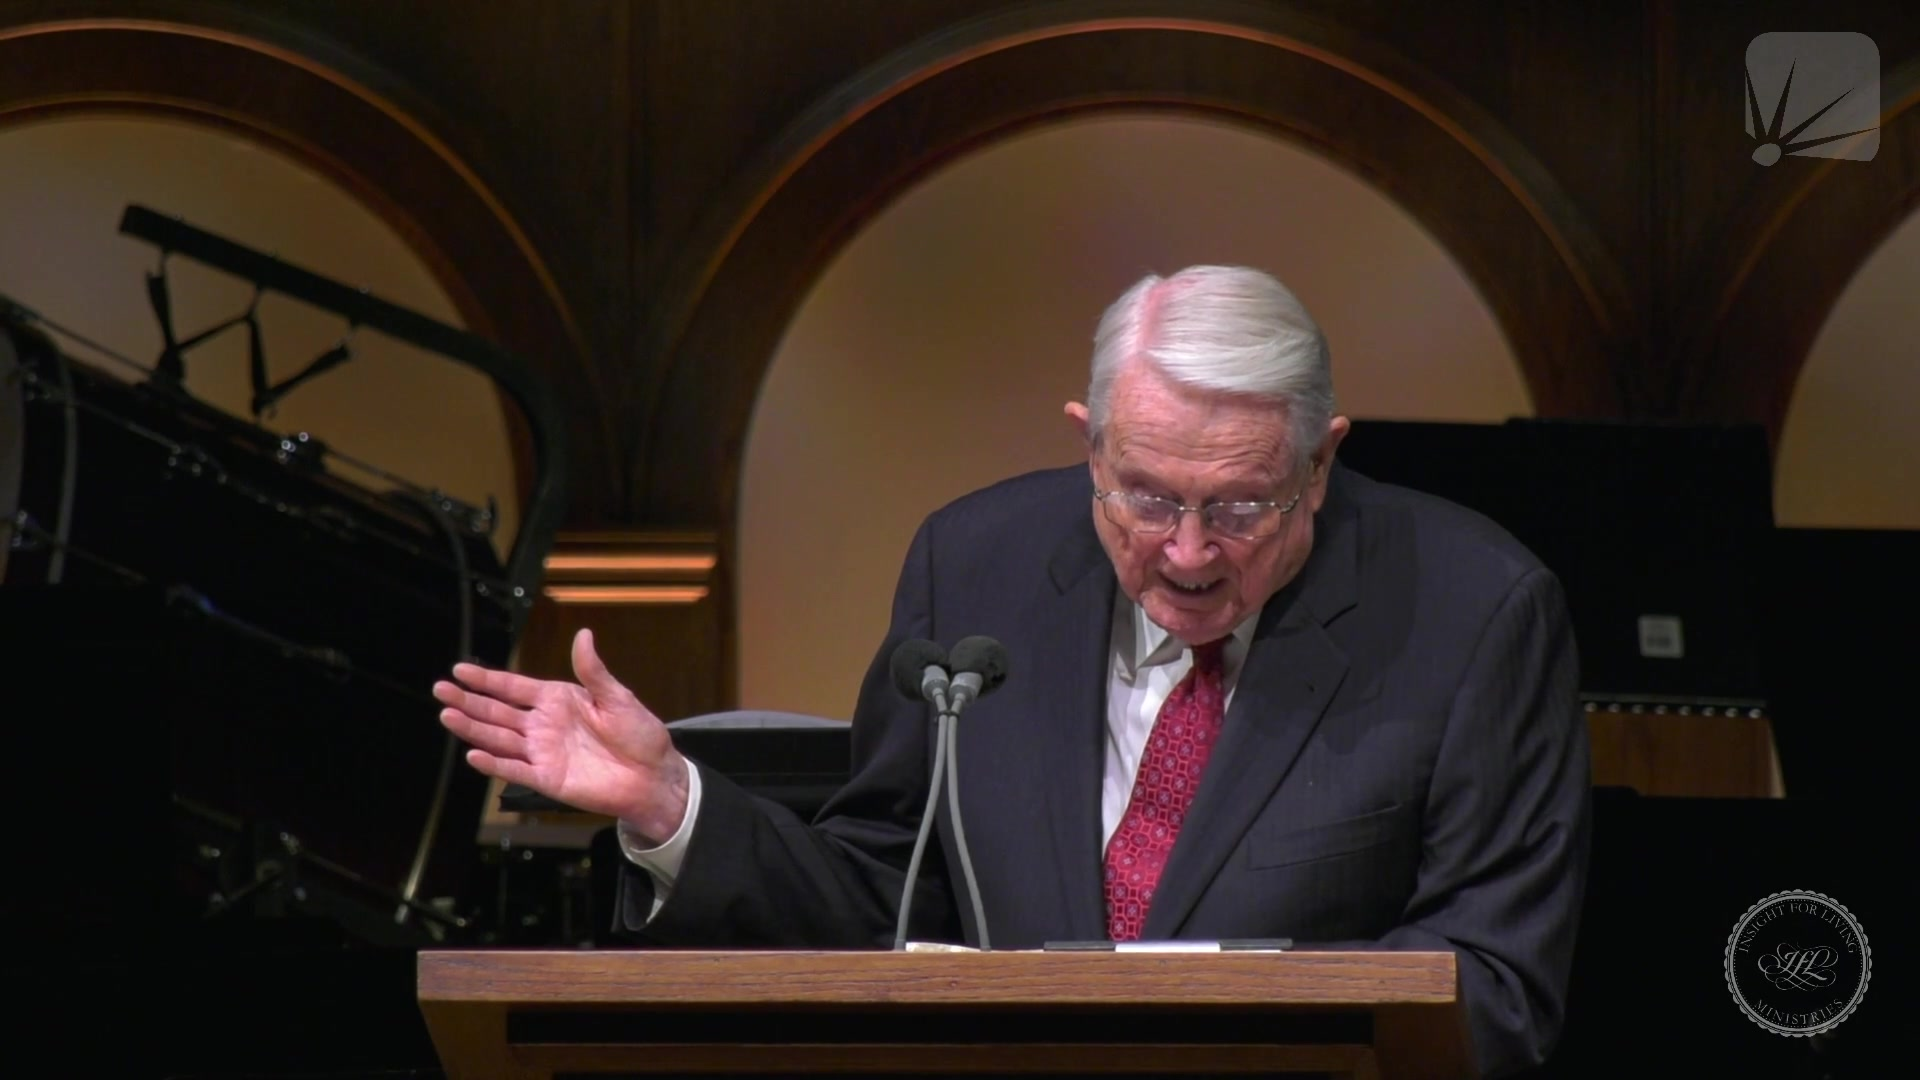 Chuck in pulpit on 20210704